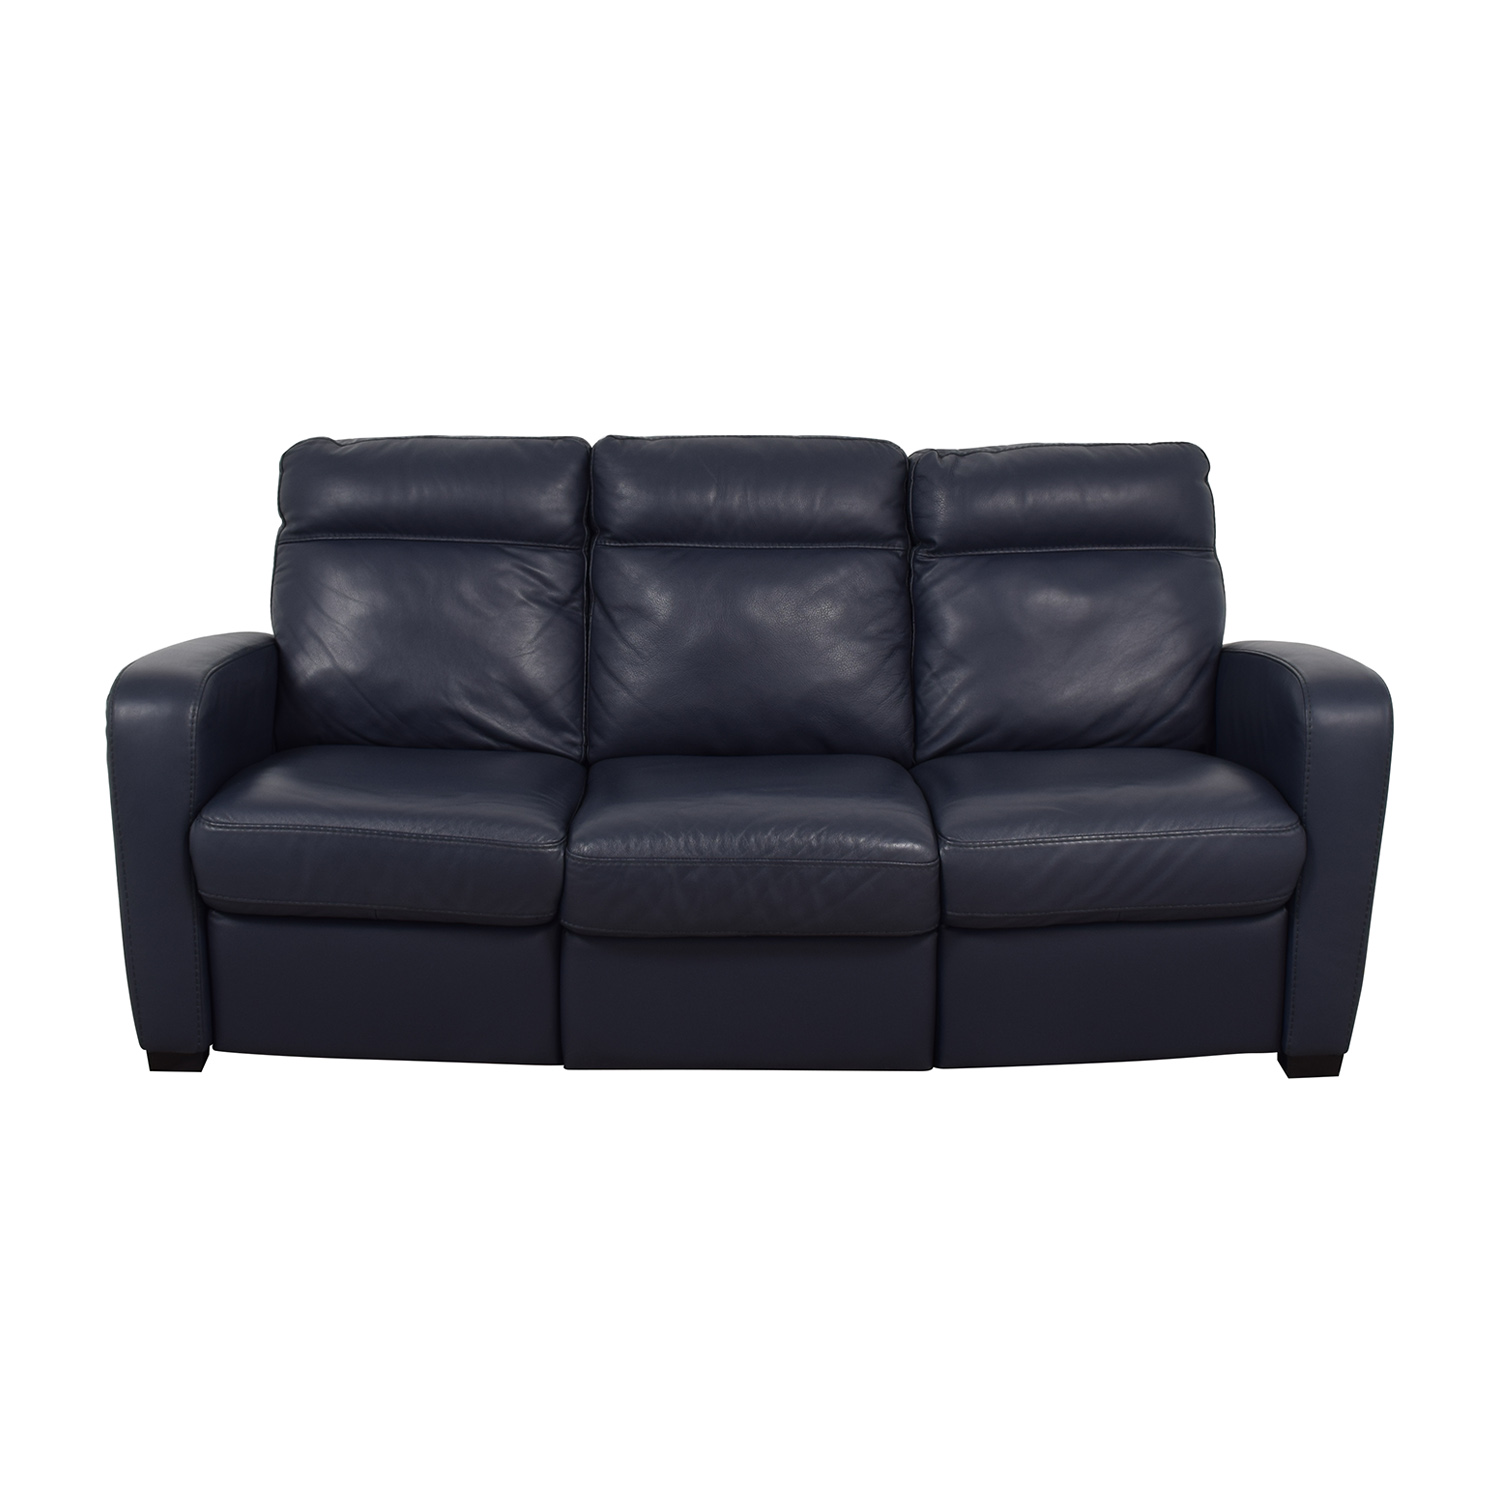 sofa couch sectional furniture connector joint snap alligator style twilight sleeper cover replacement natuzzi leather power reclining baci living room